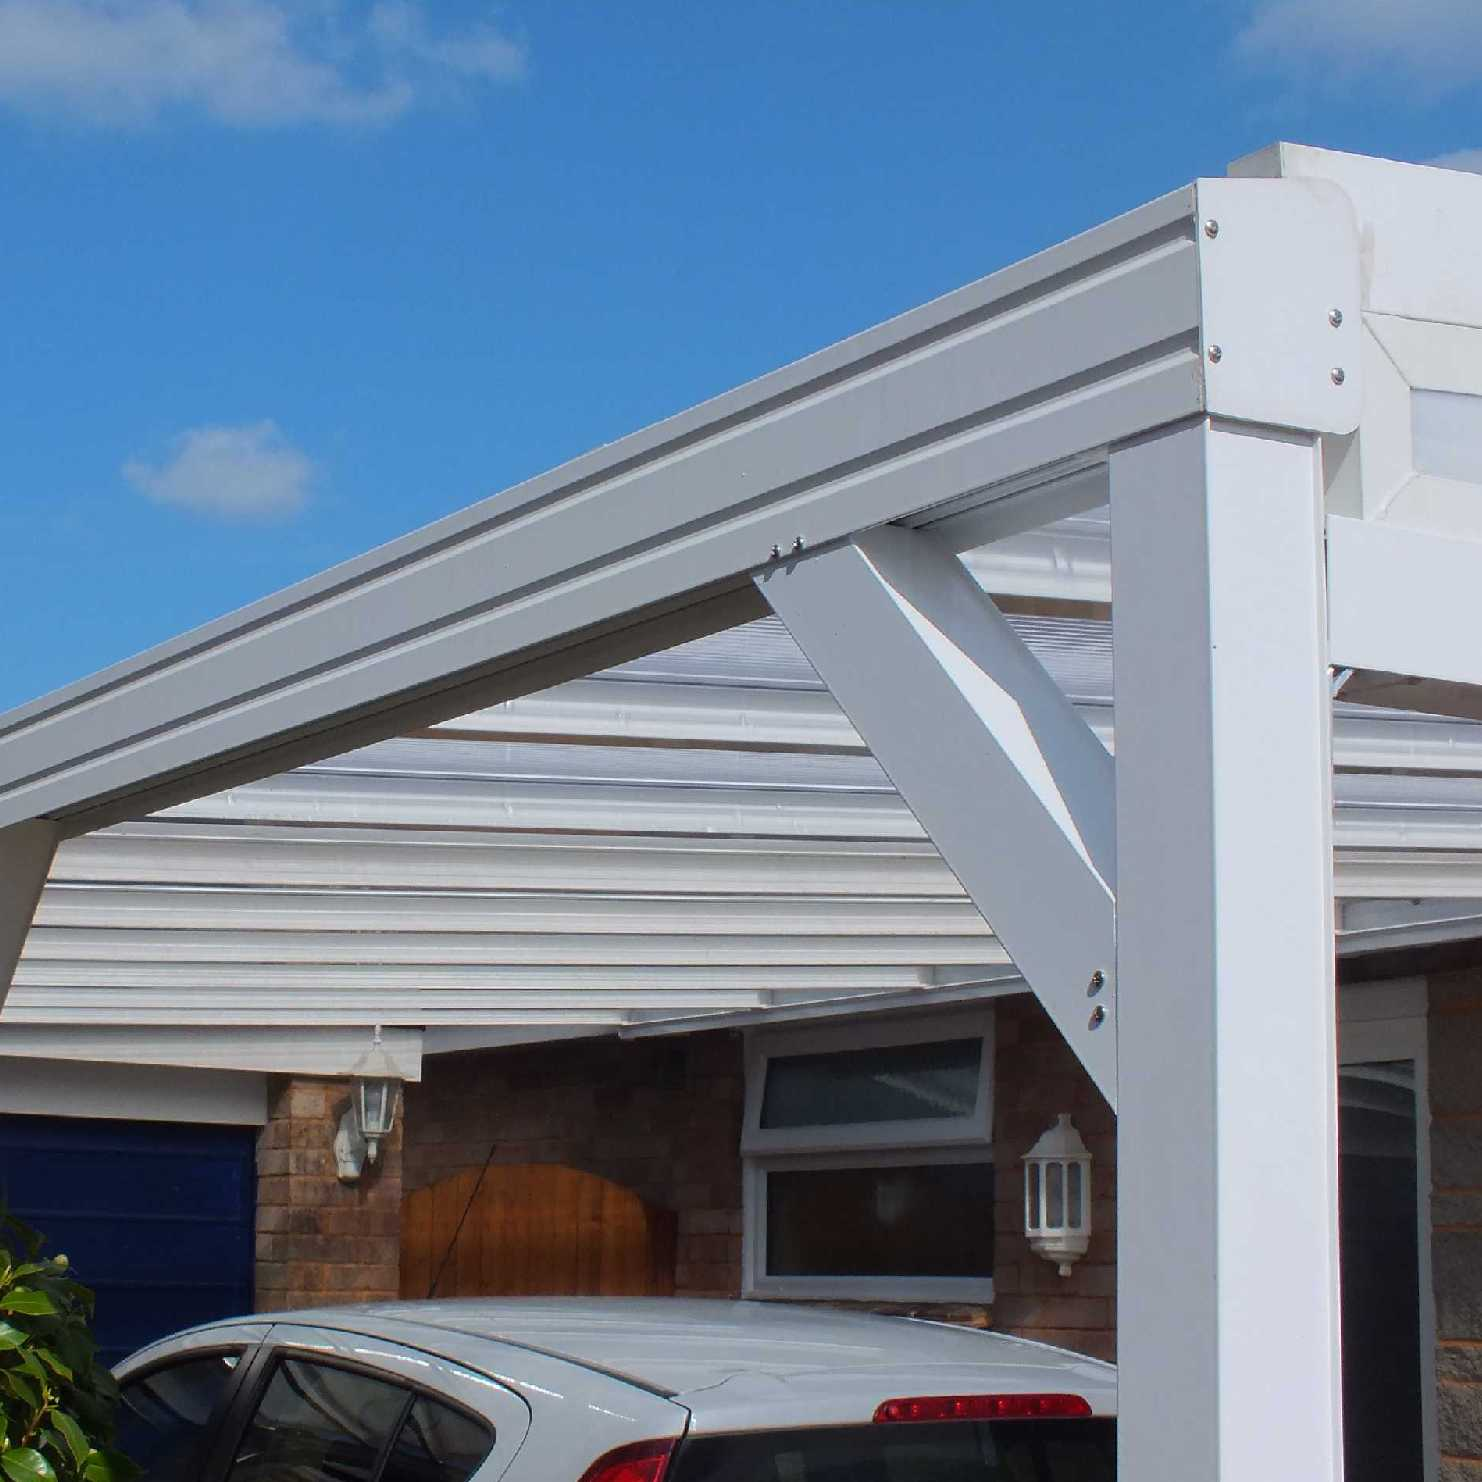 Buy Omega Smart White Lean-To Canopy with 16mm Polycarbonate Glazing - 11.4m (W) x 4.0m (P), (5) Supporting Posts online today